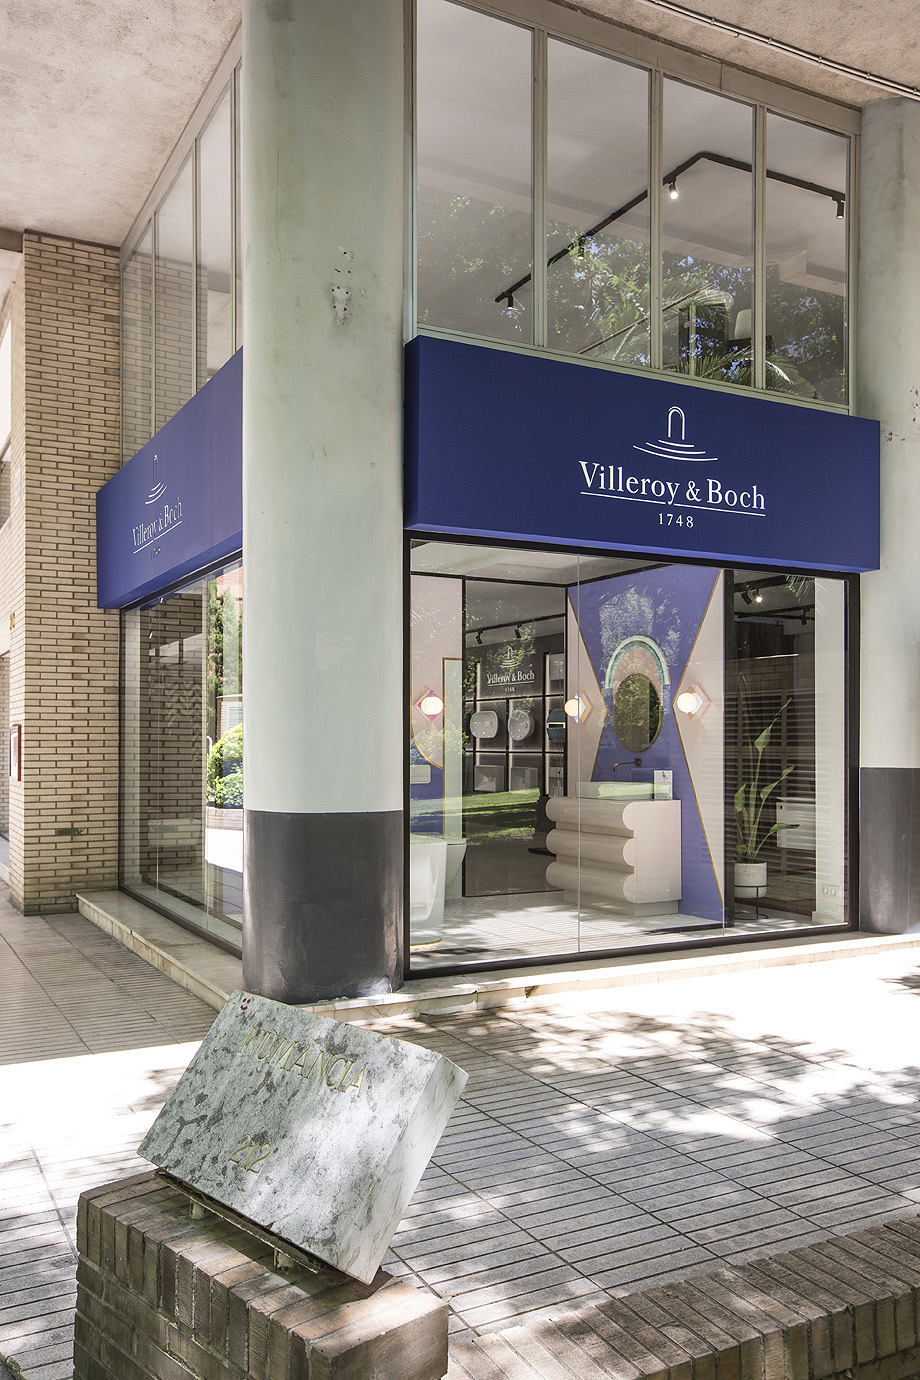 showroom villeroy & boch en barcelona (13)